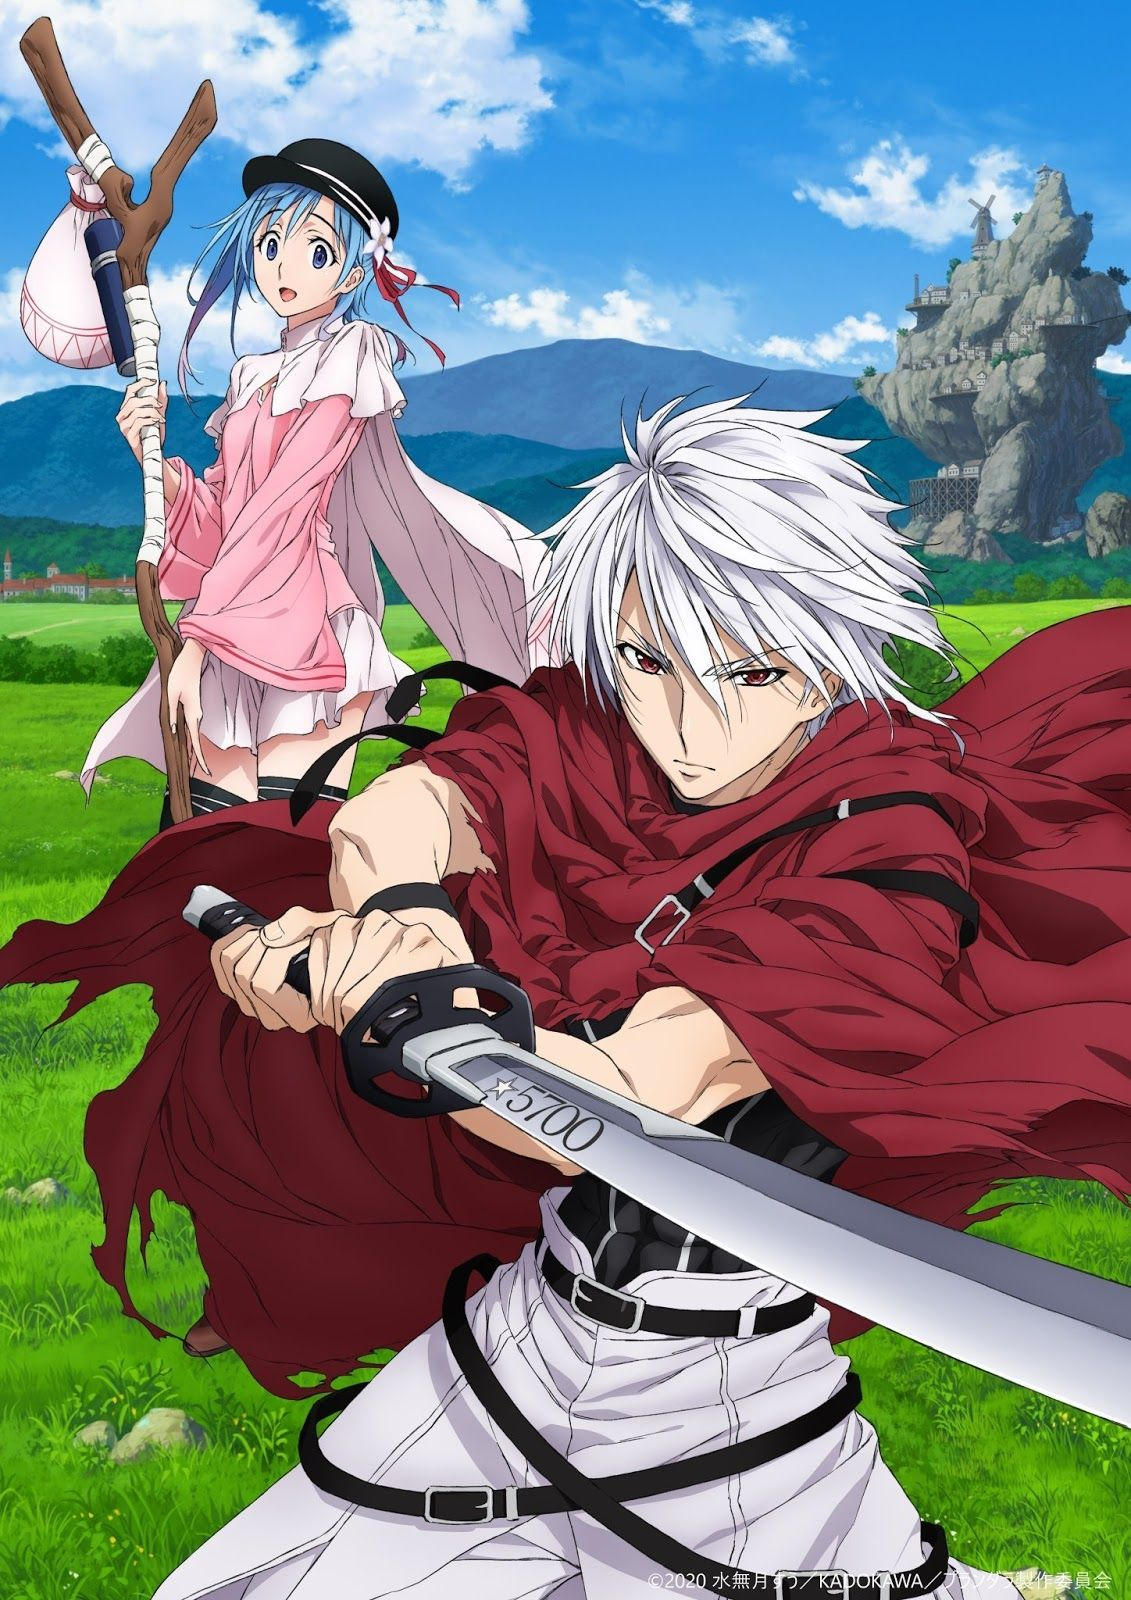 Plunderer (Special Preview) Subtitle Indonesia Manga